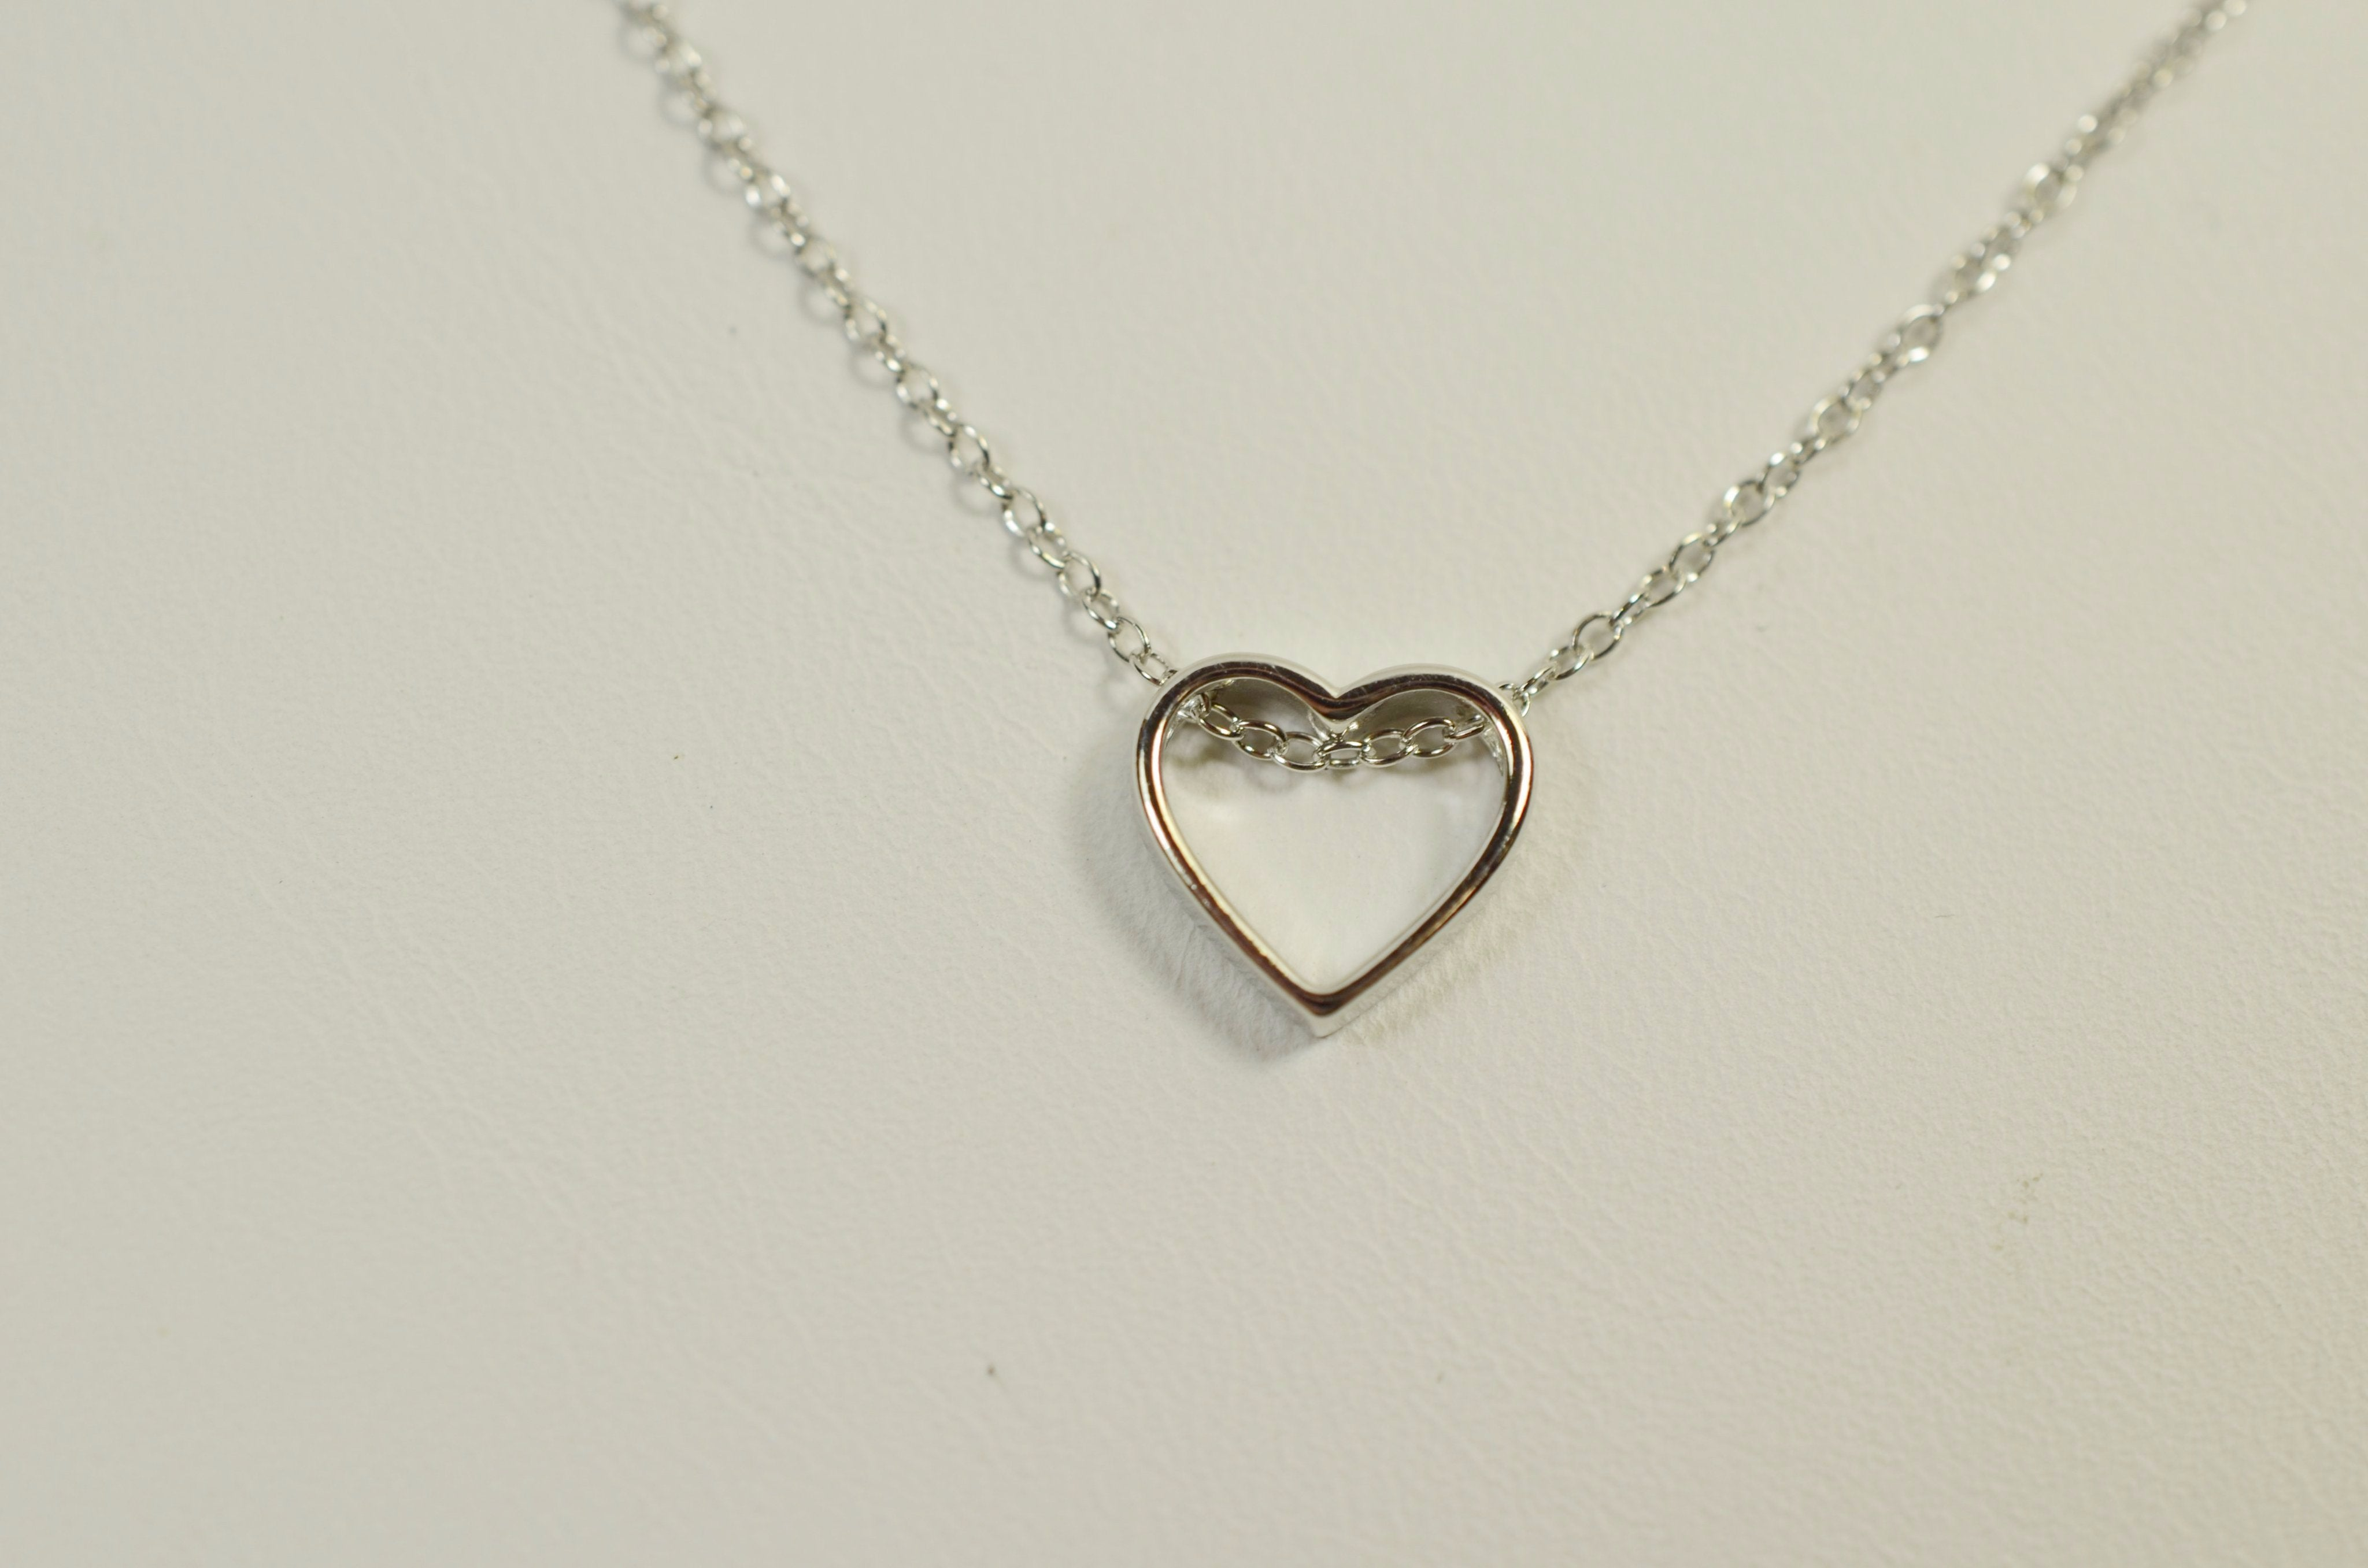 necklace ebay and main topaz multi heart white is loading silver image amour itm open